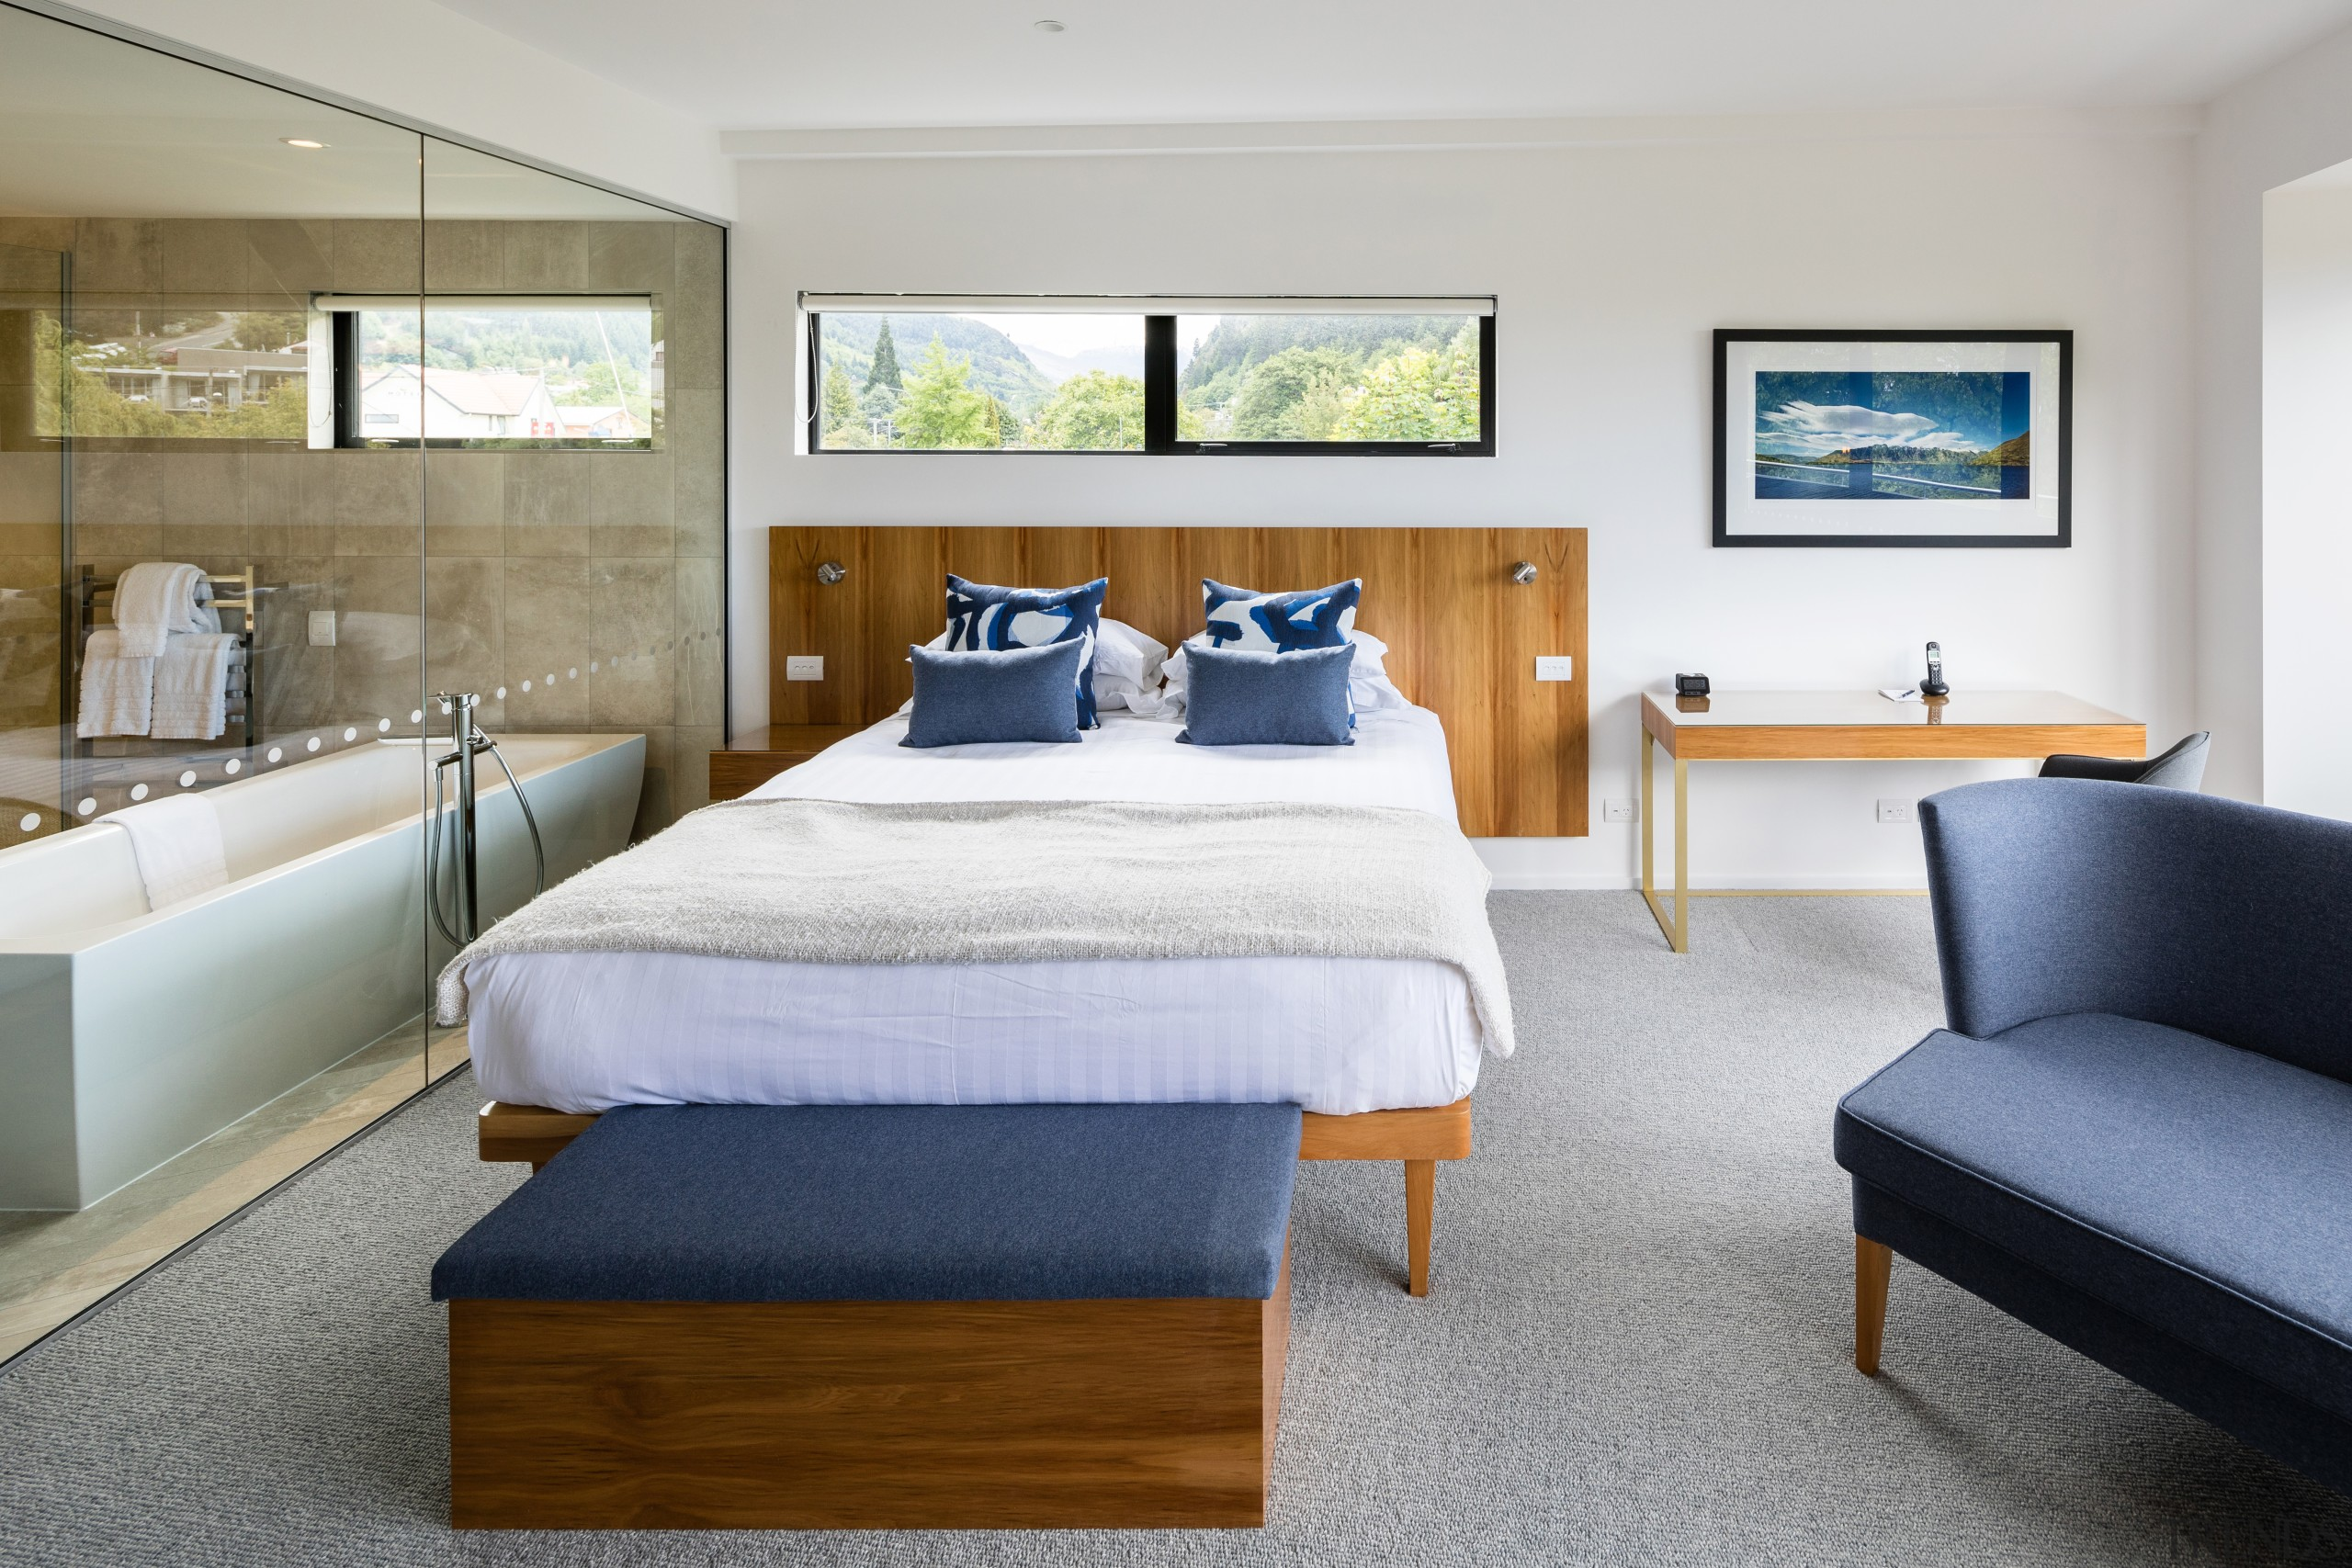 A rectangular bathtub is a modern feature within bed, bed frame, bed sheet, bedding, bedroom, boutique hotel, building, ceiling, comfort, daylighting, floor, furniture, hardwood, home, house, interior design, mattress, mattress pad, nightstand, property, real estate, room, suite, table, wall, gray